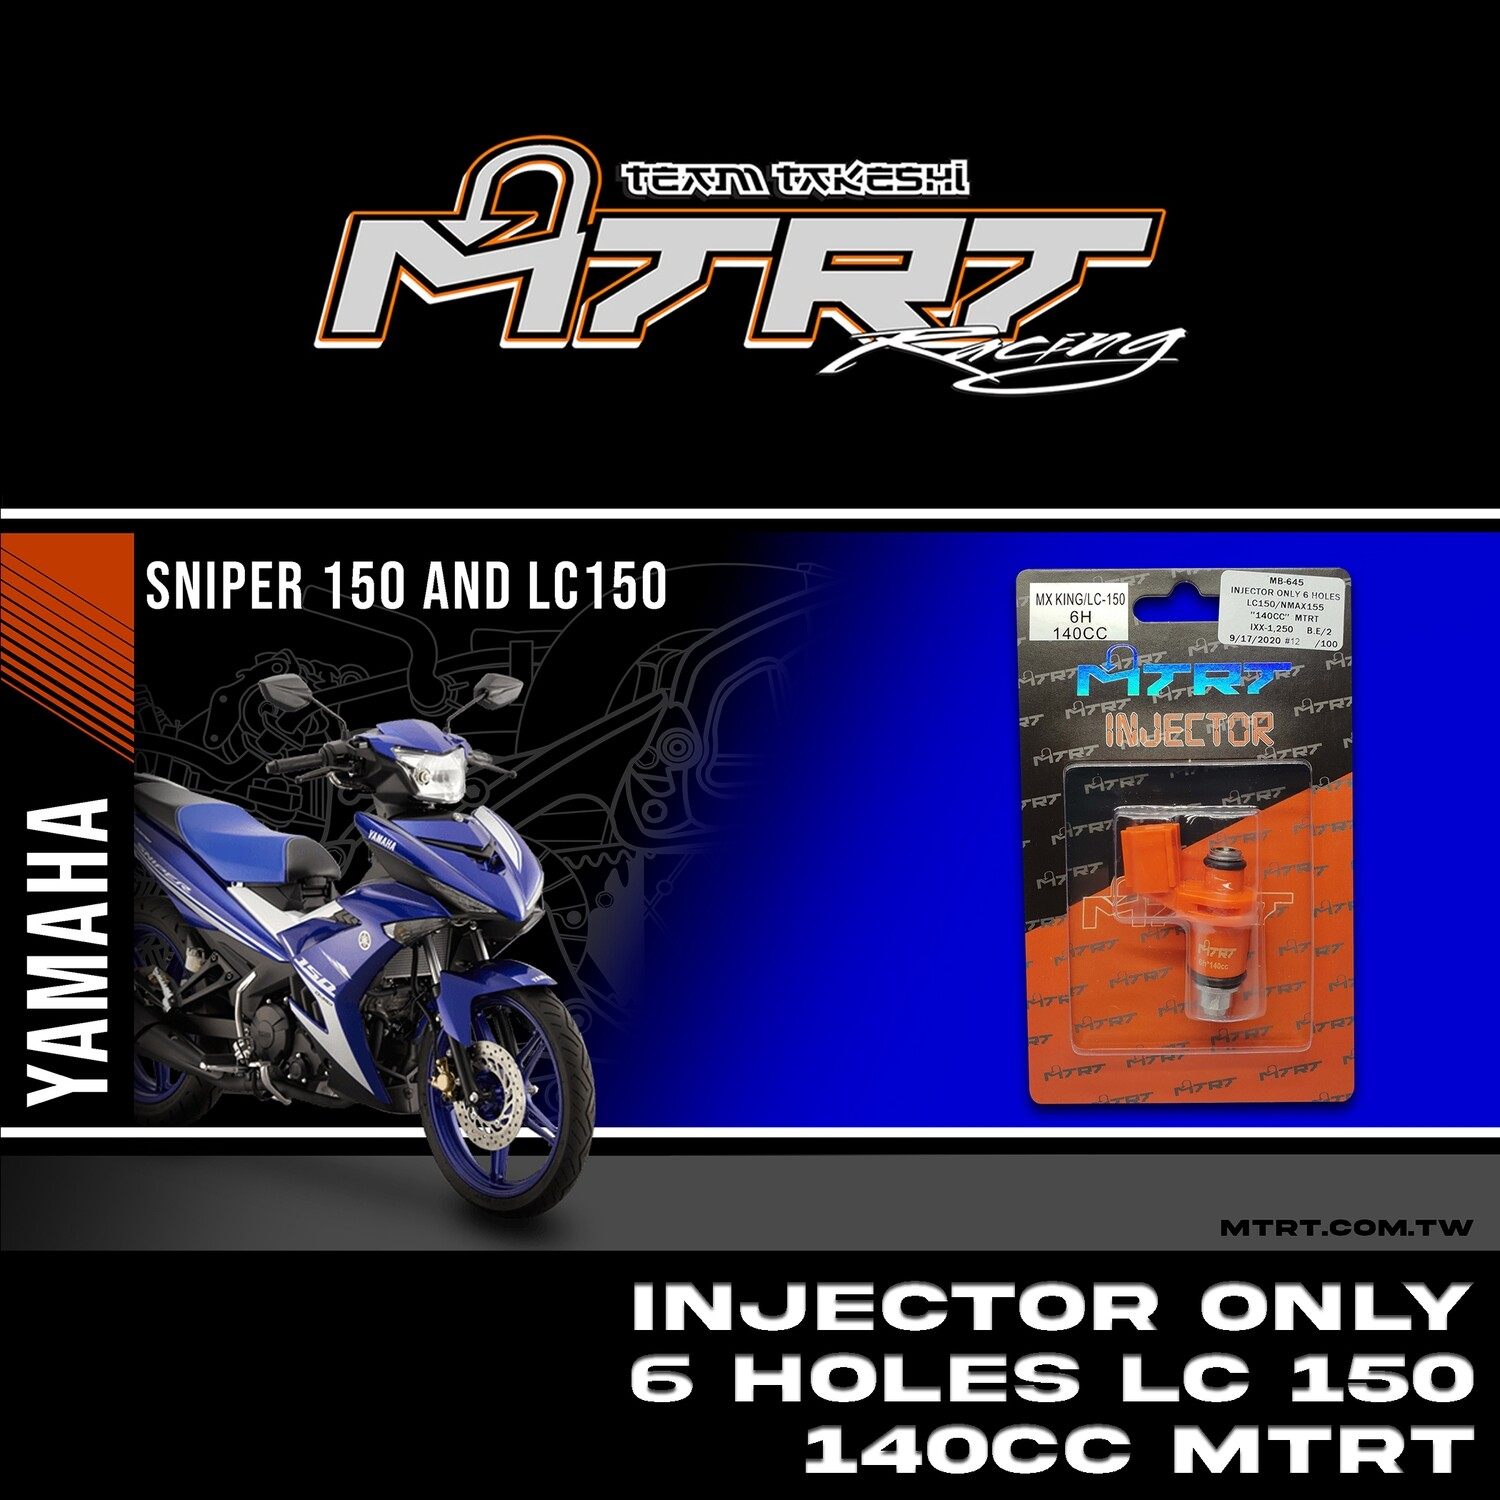 INJECTOR ONLY 6HOLES LC150 NMAX155 140CC MTRT